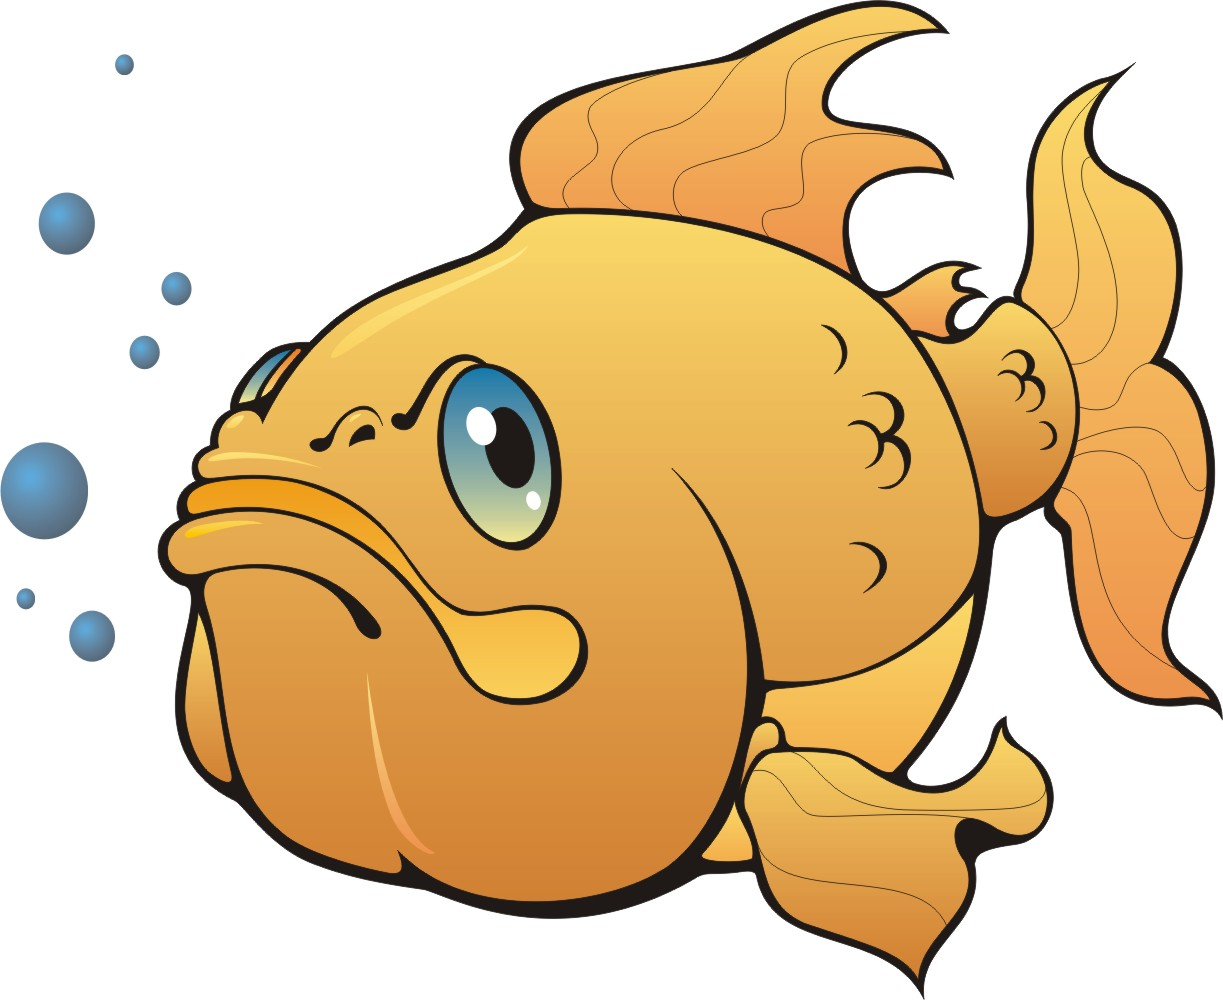 Big Gold Fish Mascot